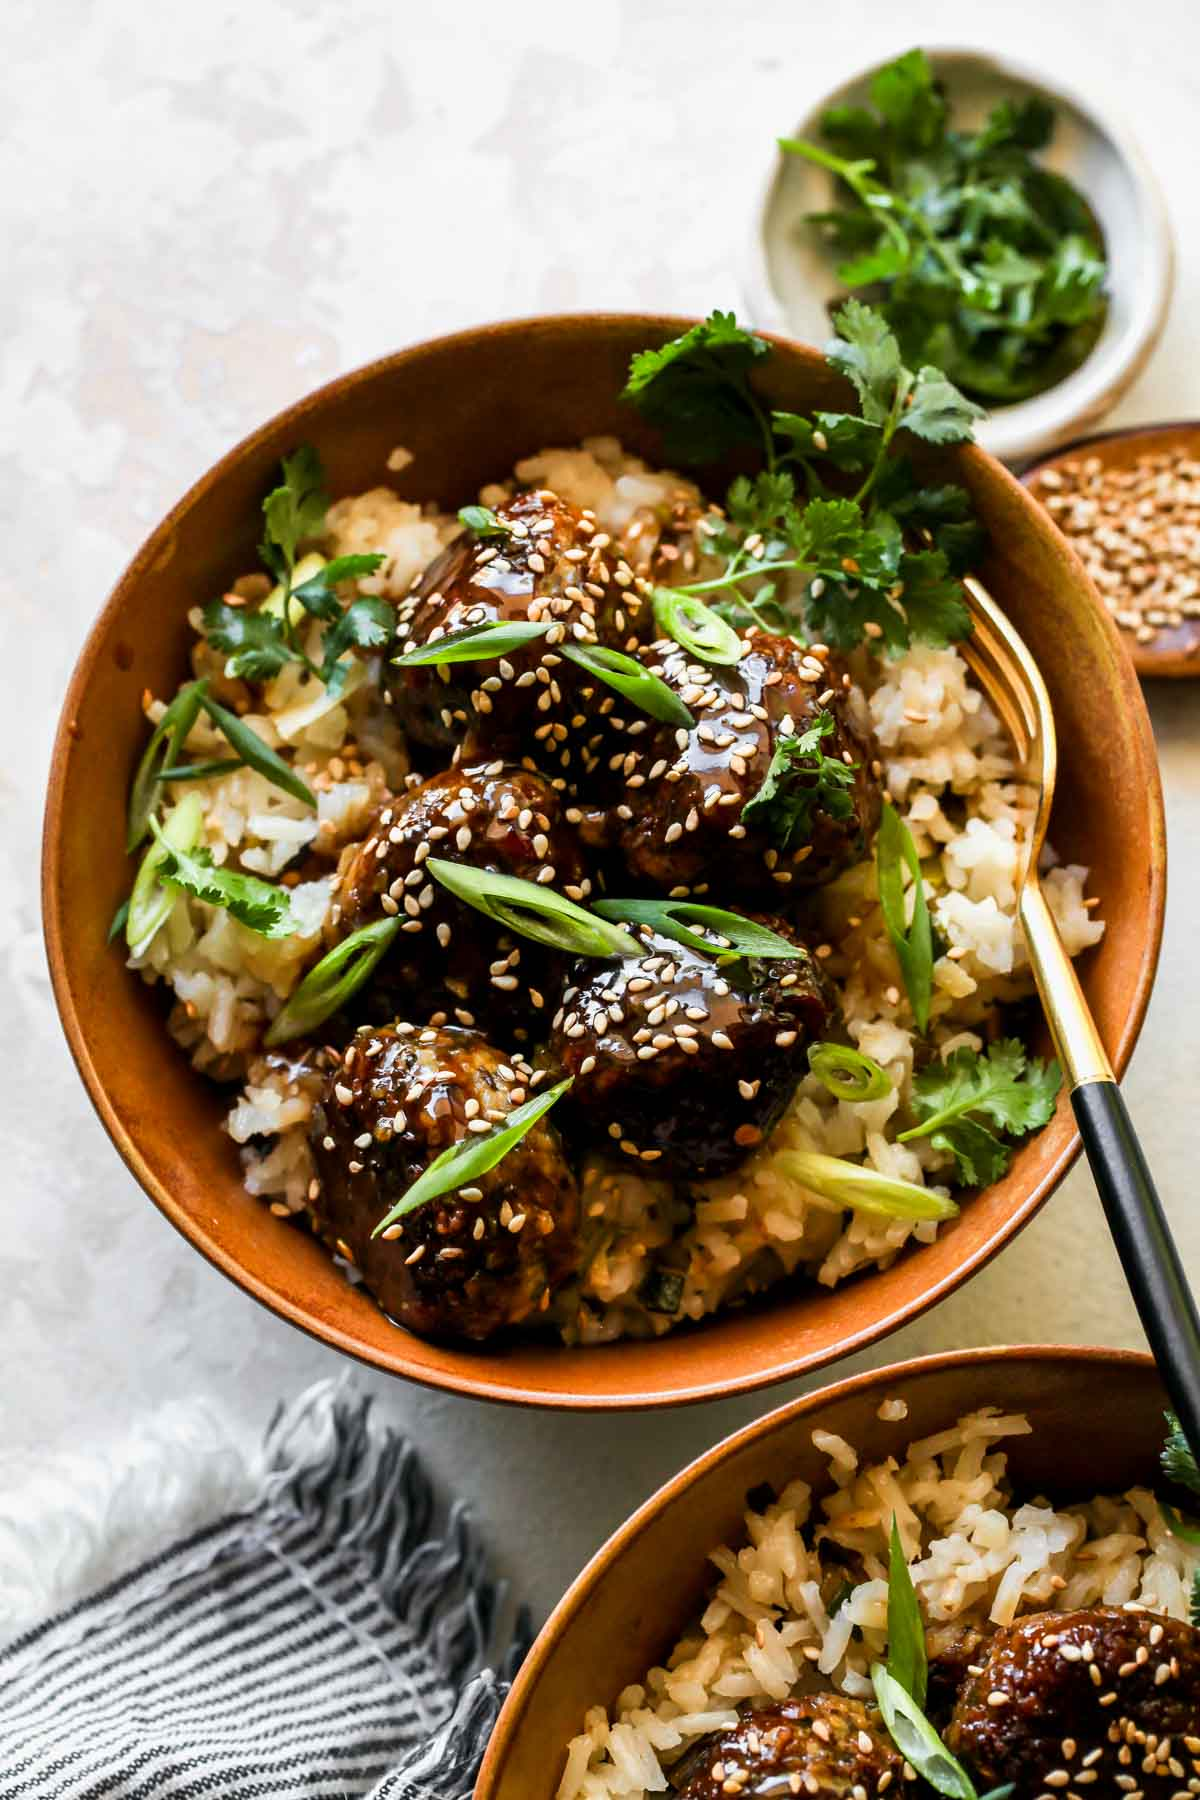 Mushroom meatballs over white rice in a gold bowl topped with scallions